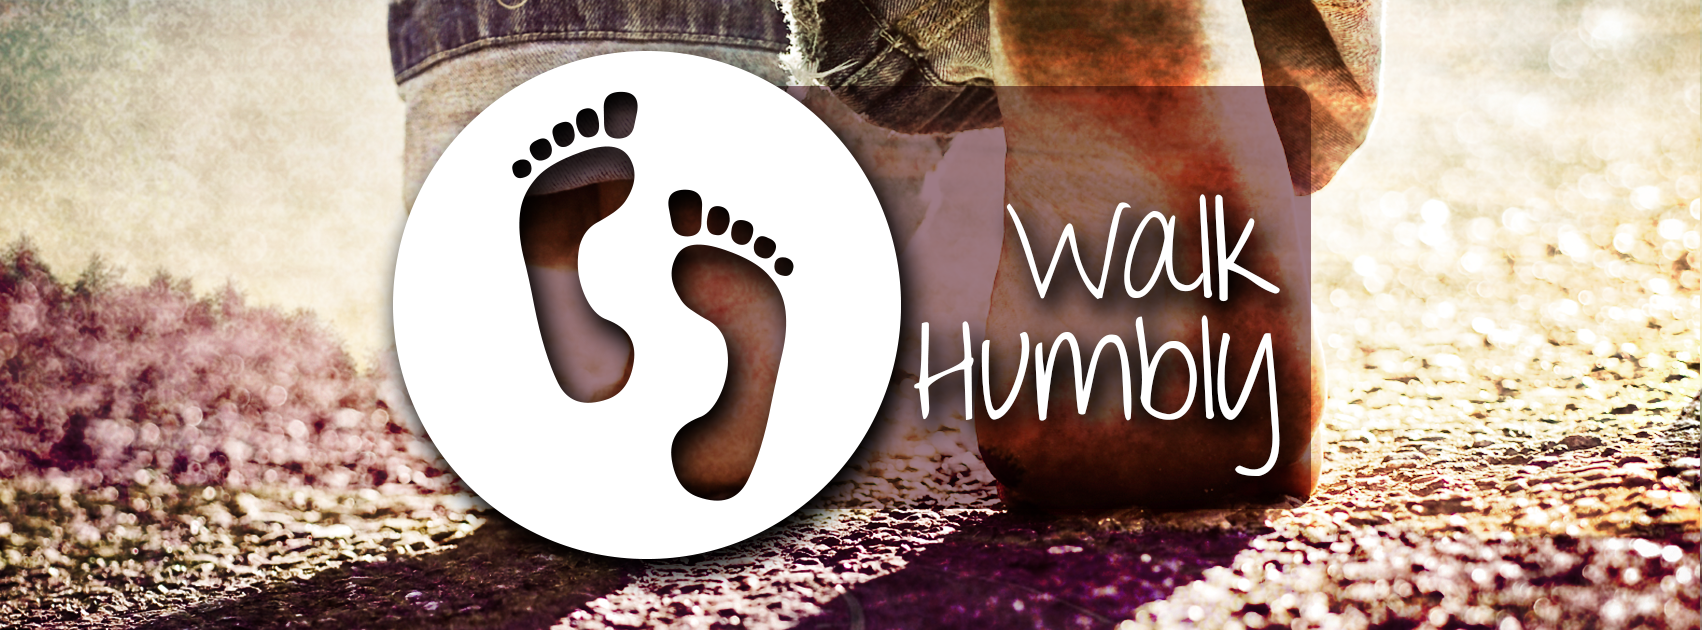 Walk Humbly, Part 4: Humble Yourselves